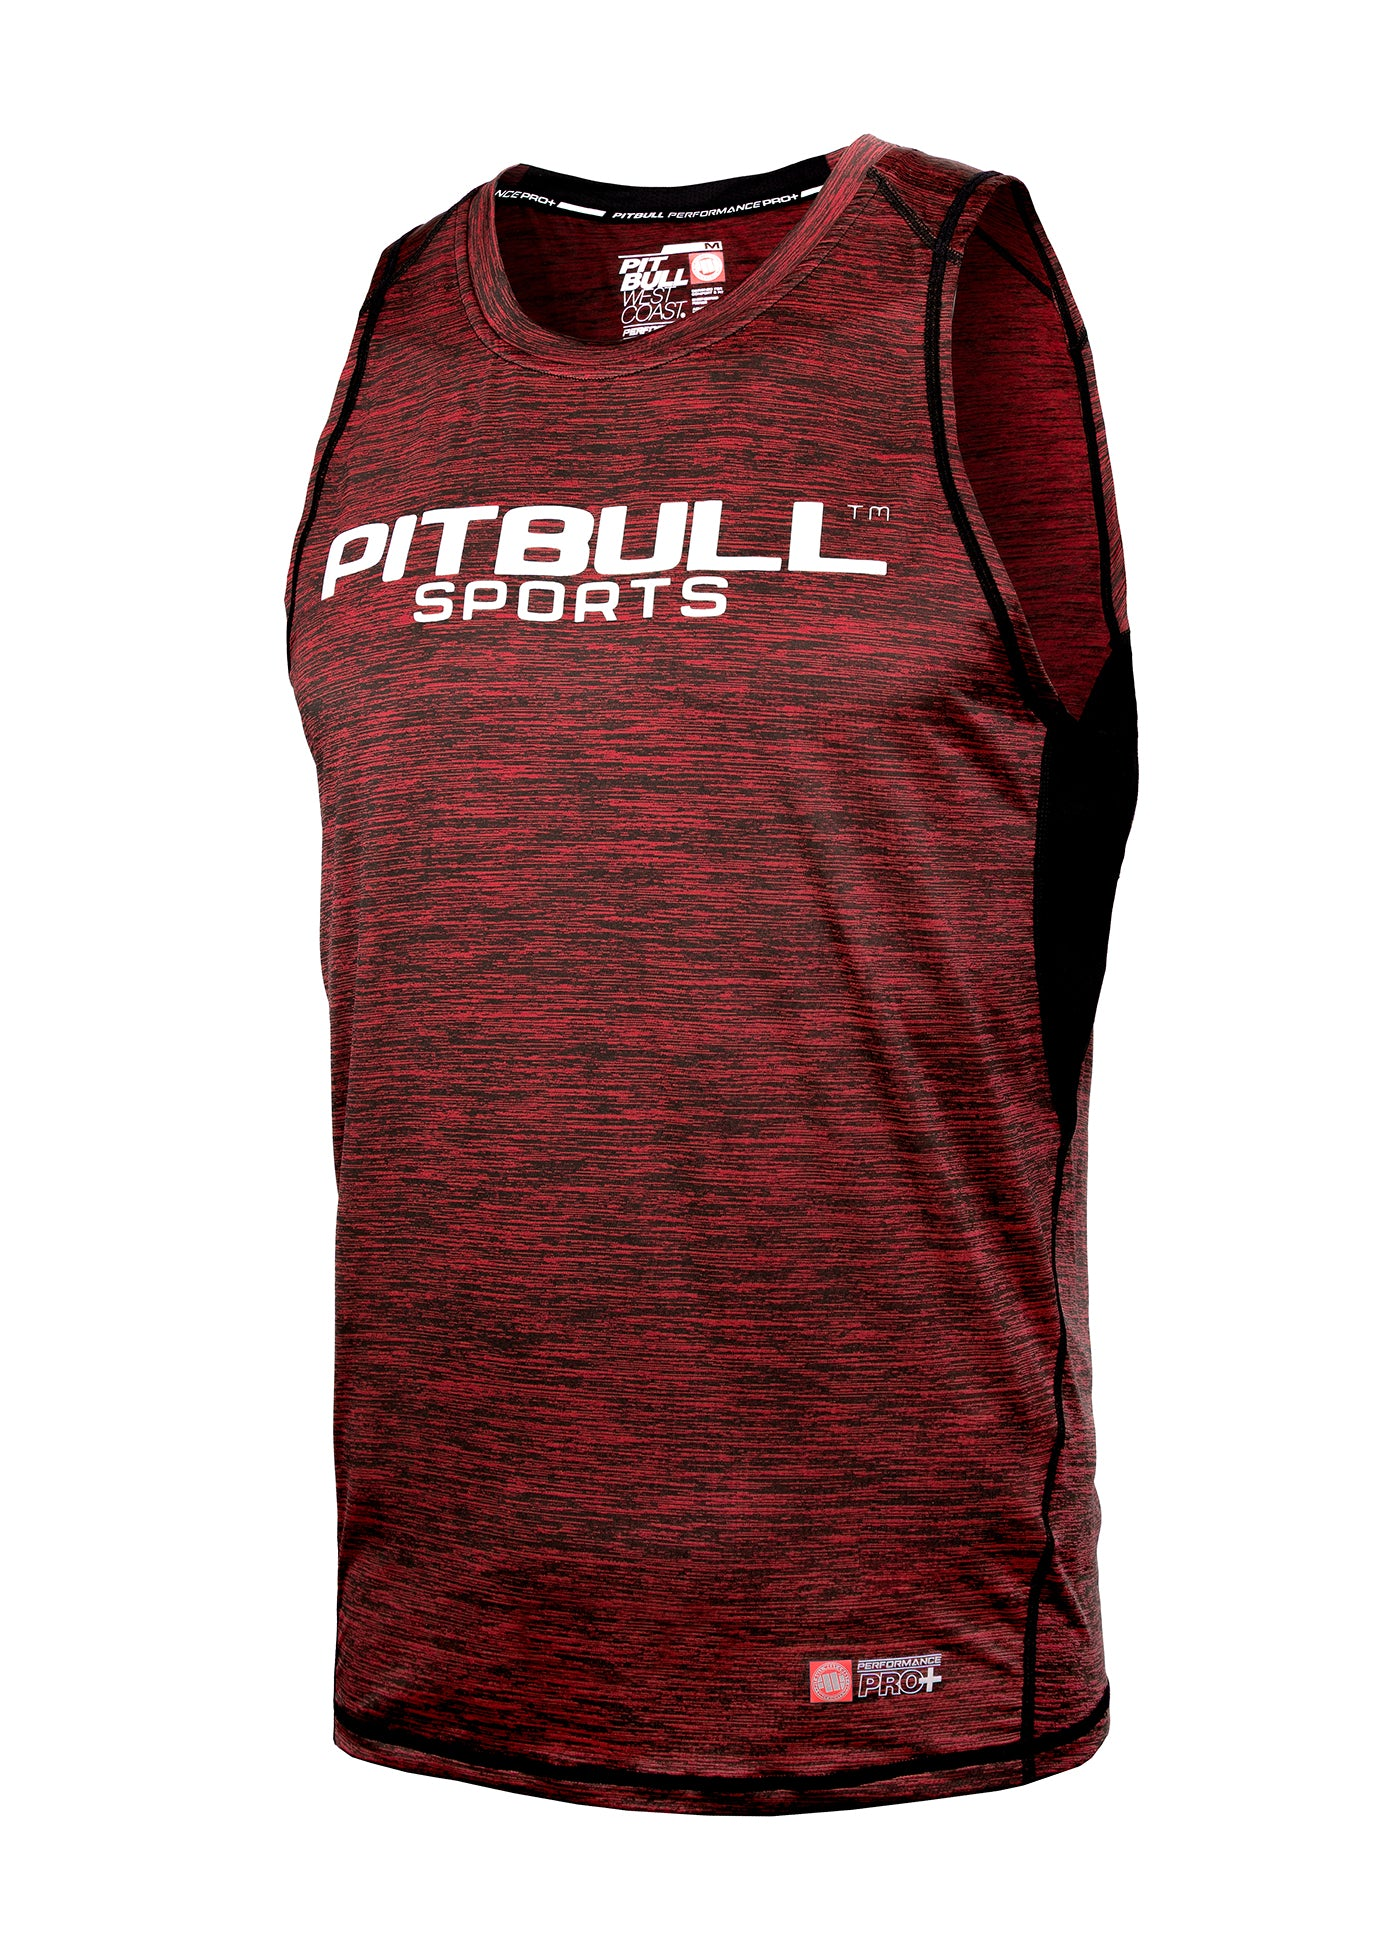 TANK TOP COMPRESSION PRO PLUS MLG Red - pitbullwestcoast